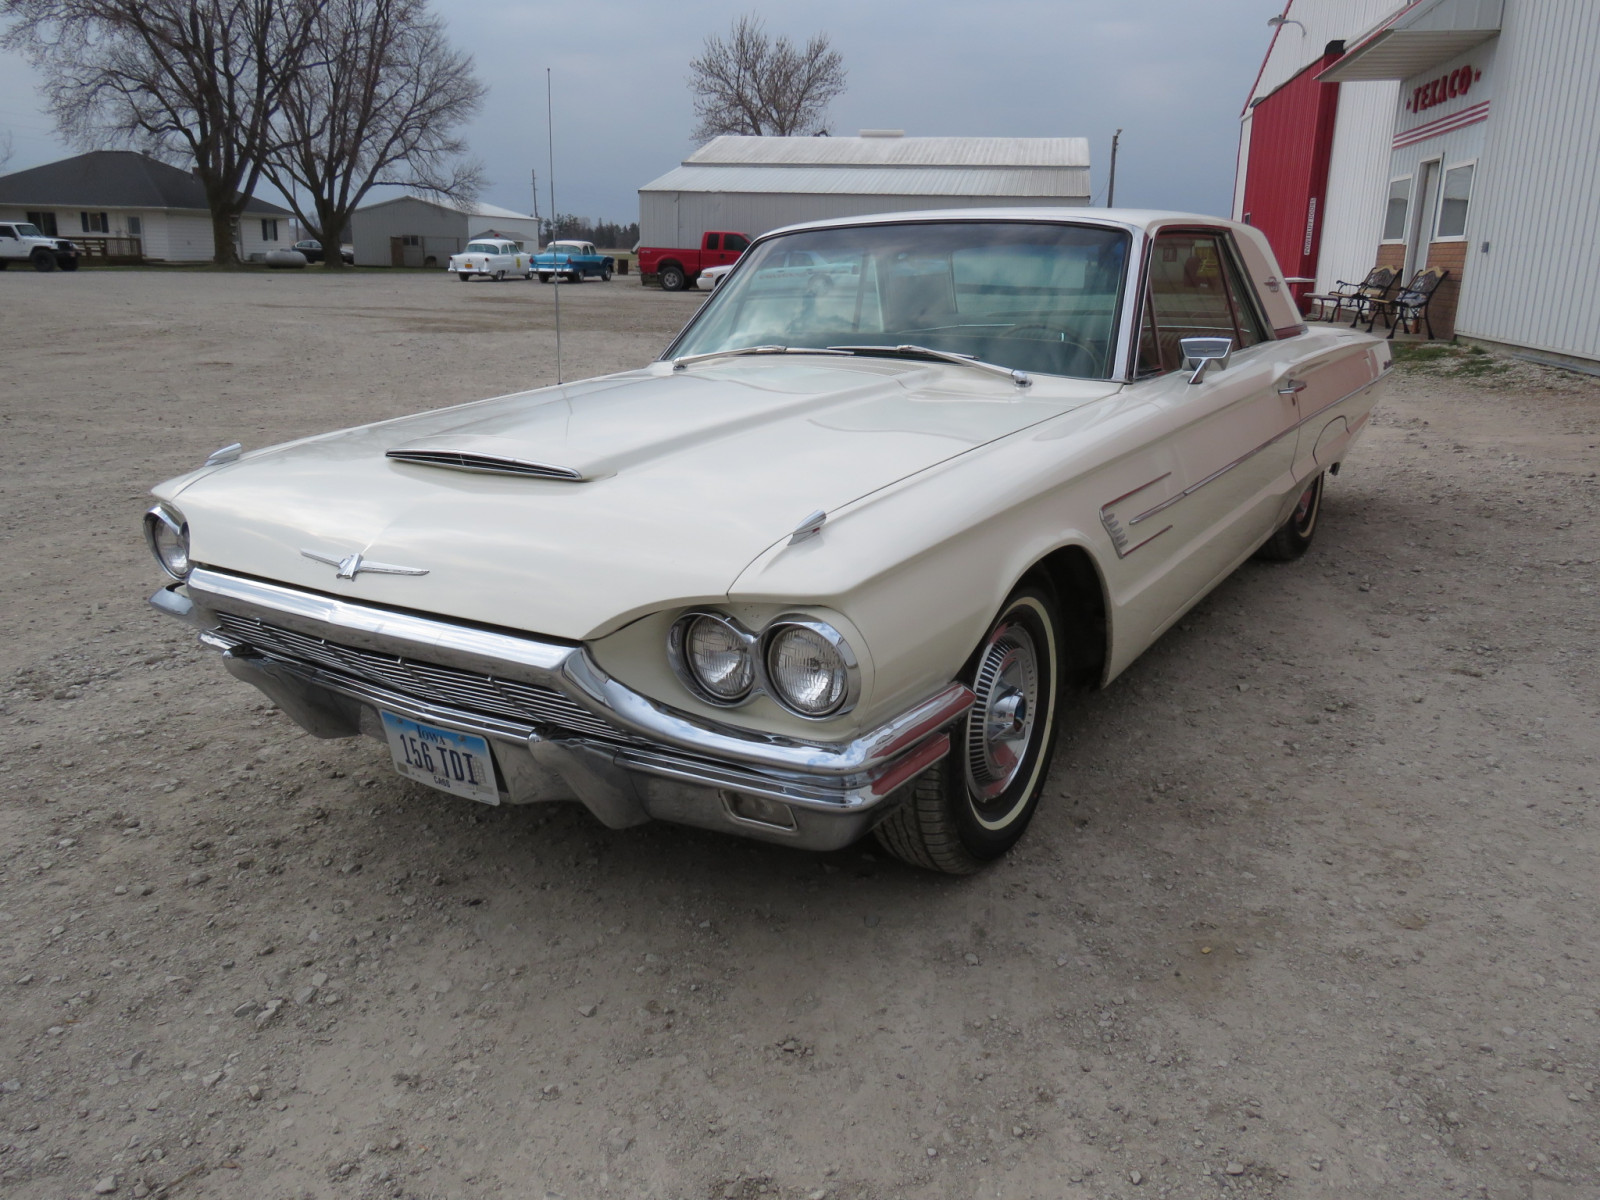 1965 Ford Thunderbird Coupe - Image 3